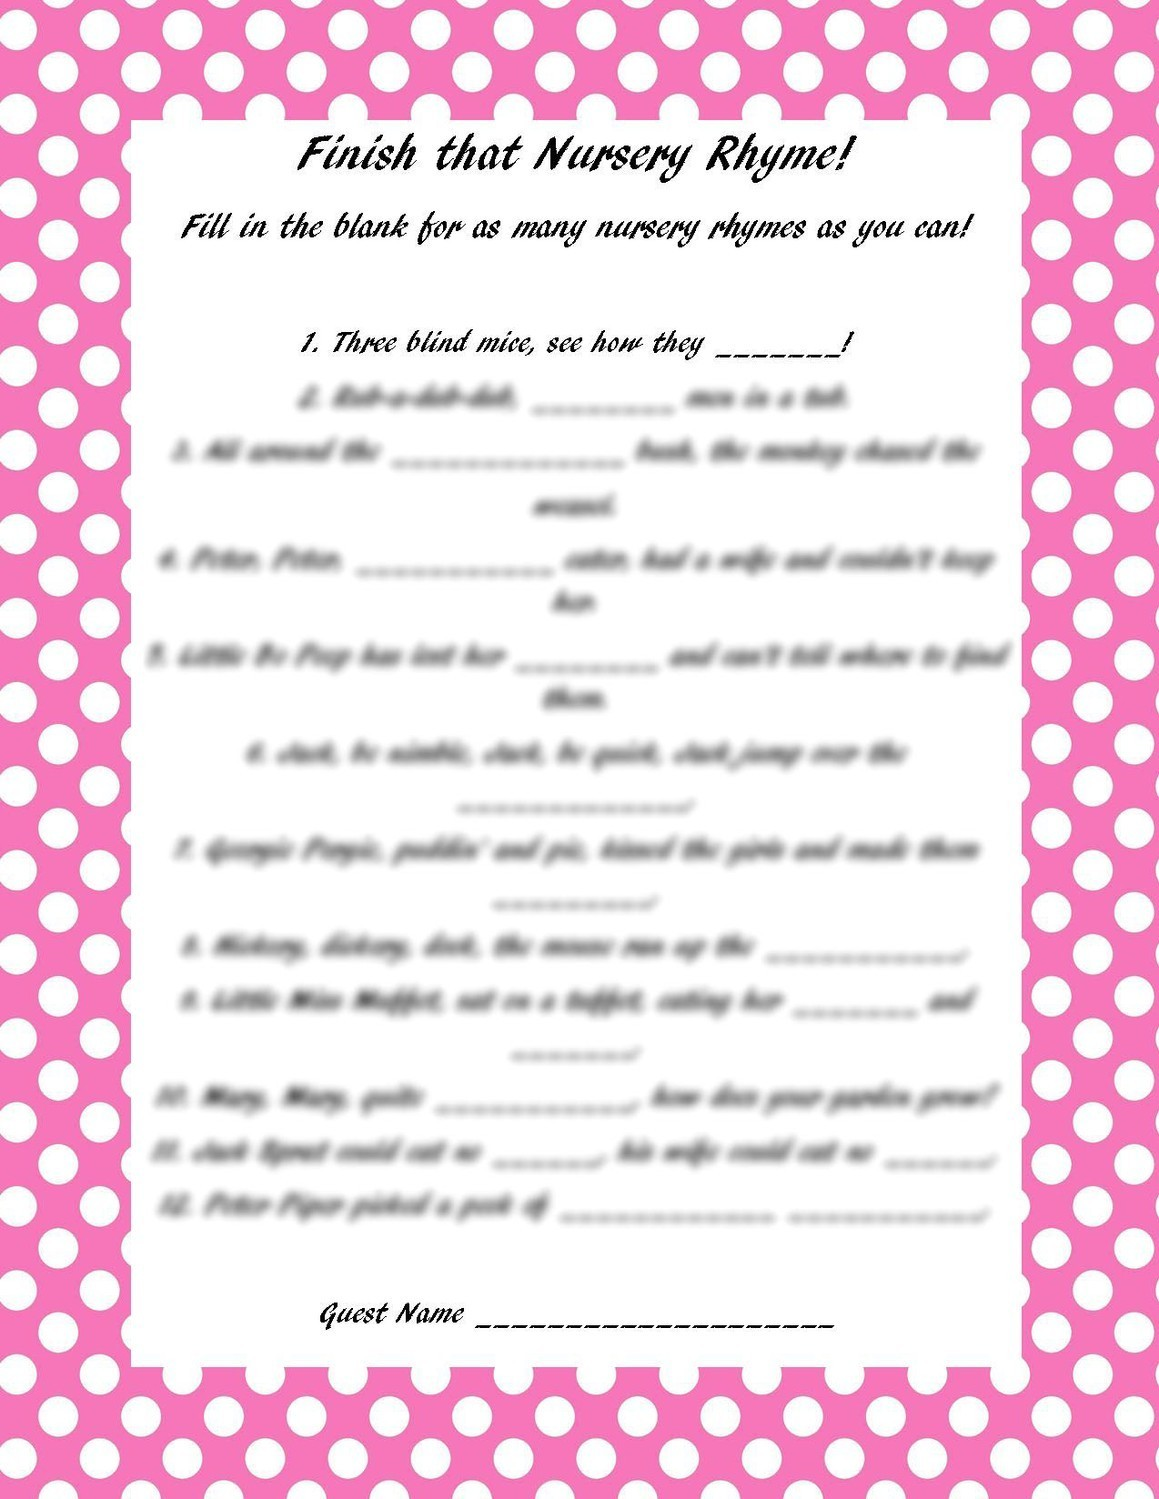 Baby Shower Finish The Nursery Rhyme Printable Diy On